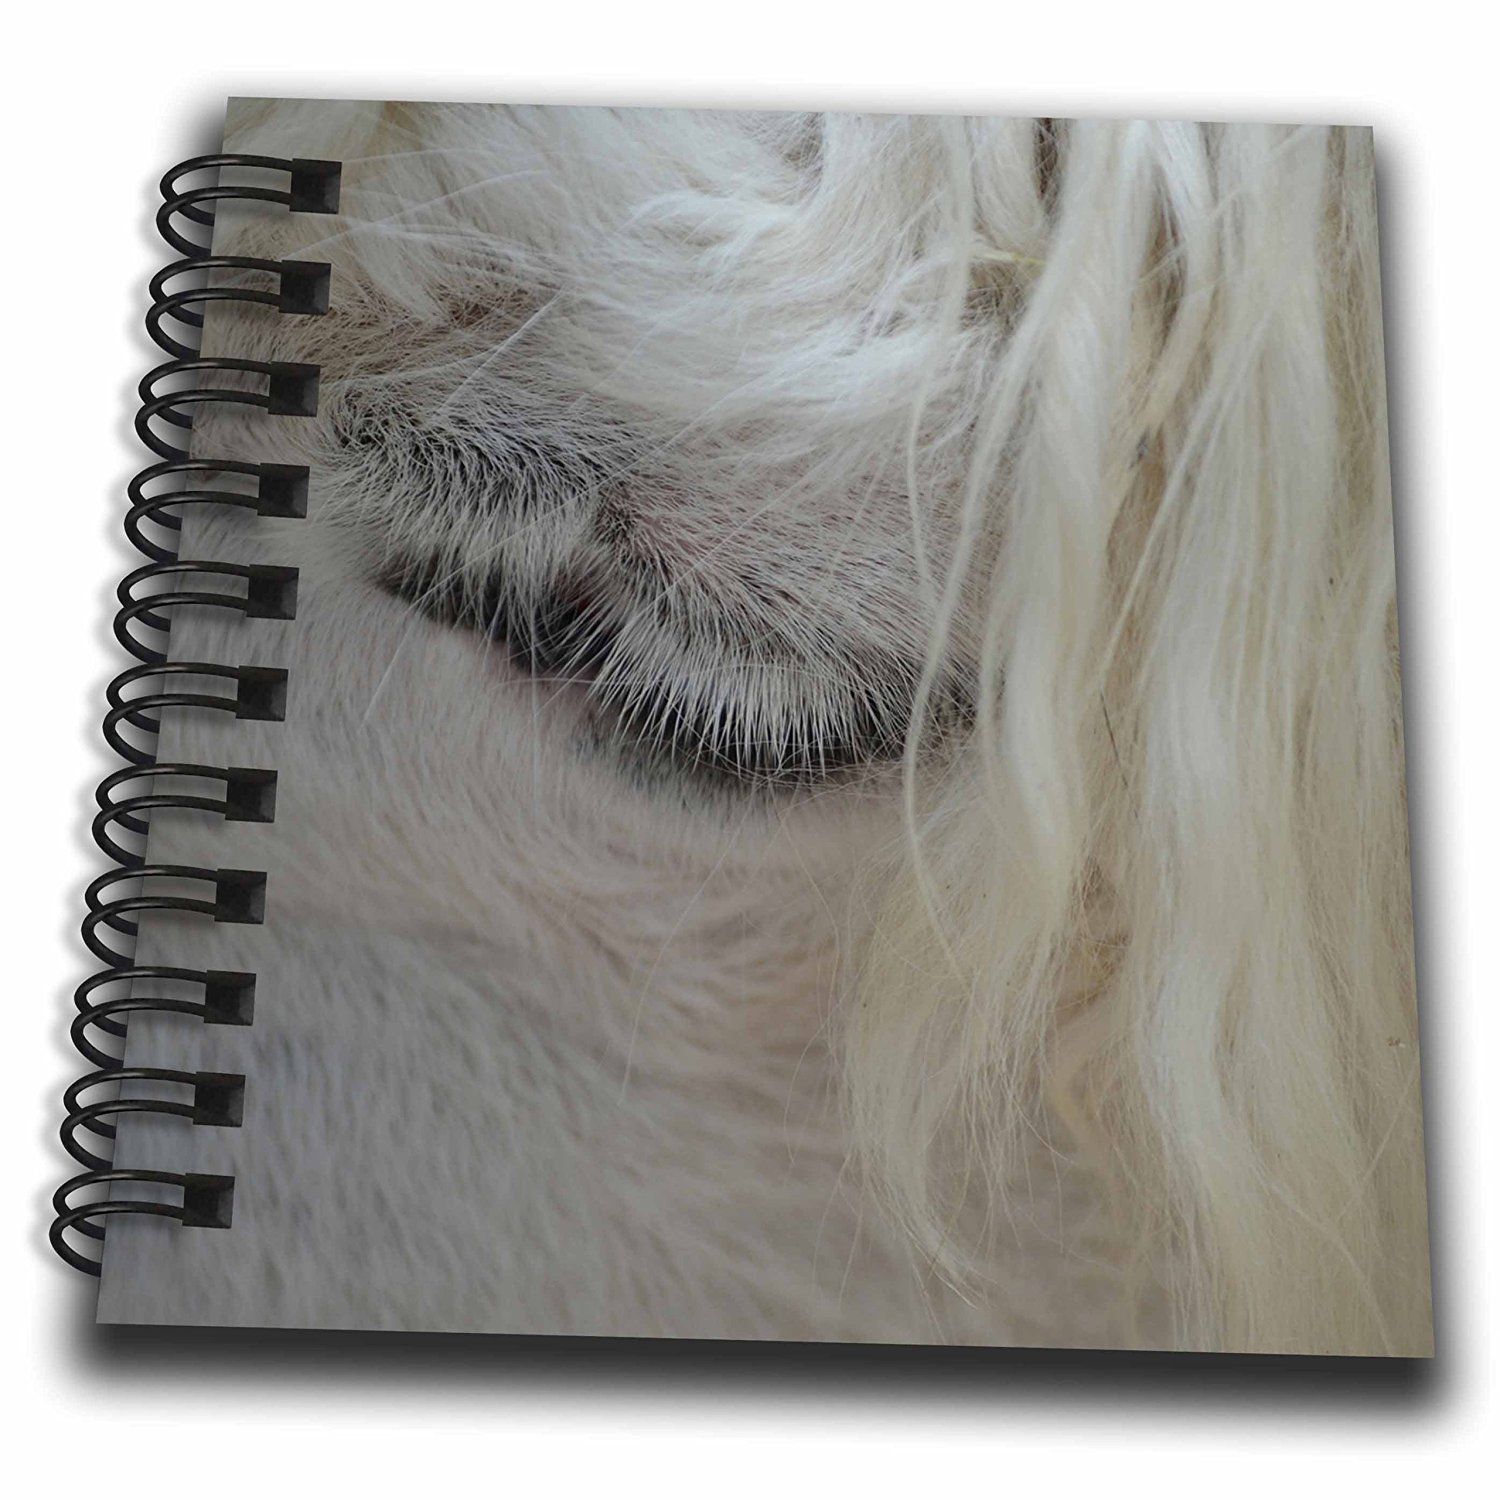 Susans Zoo Crew Animals - White Llama Eye Under Hair - Mini Notepad 4 x 4 inch (db_216030_3)